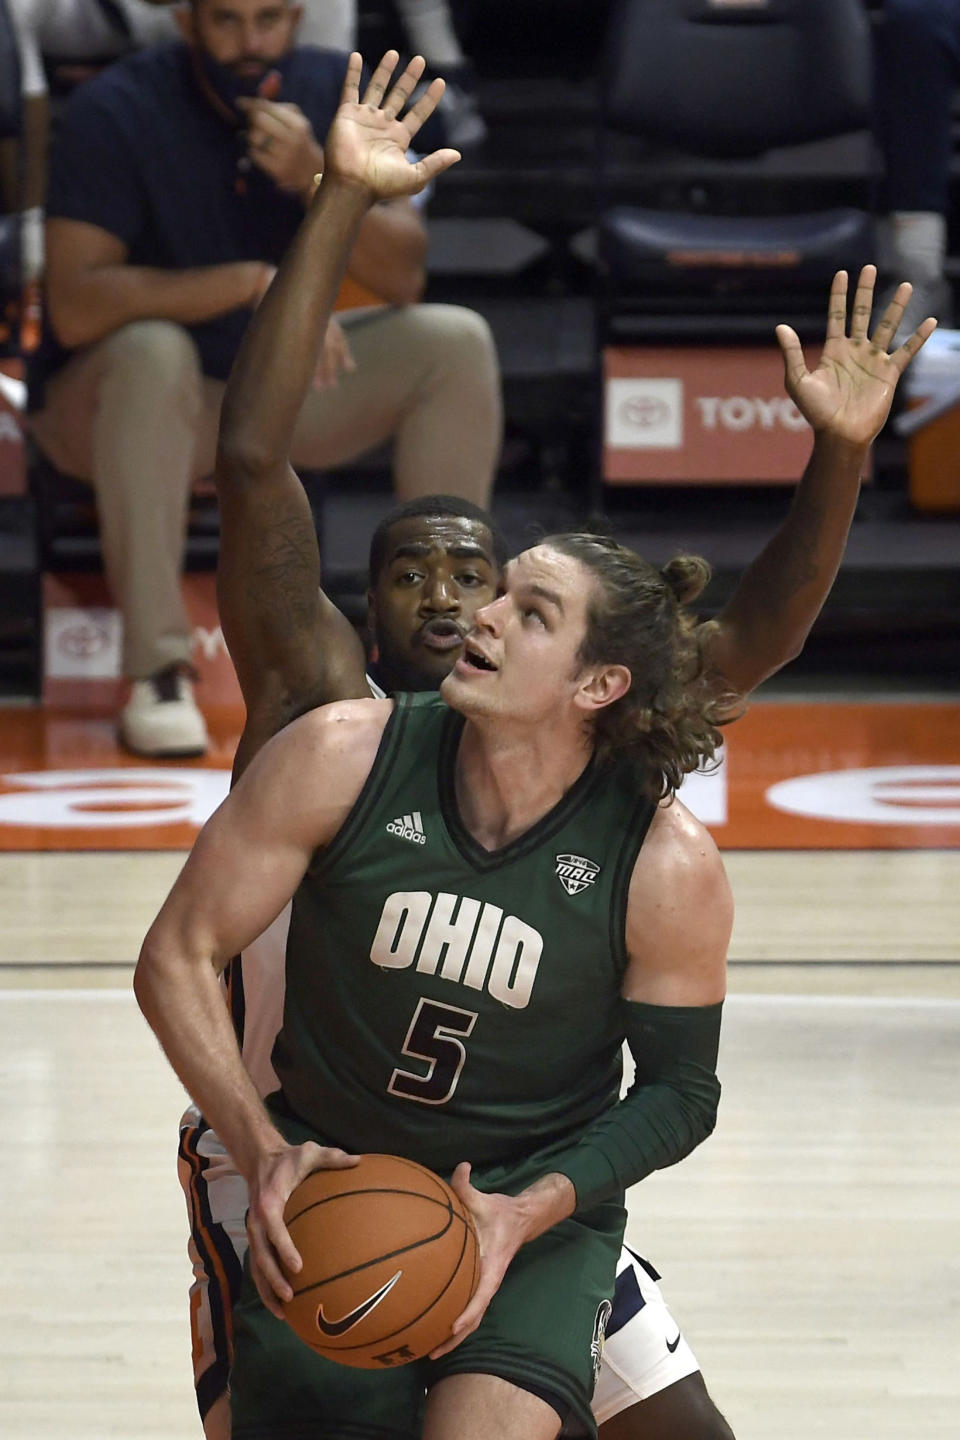 Ohio forward Ben Vander Plas (5) shoots as Illinois guard Da'Monte Williams (20) defends in the first half of an NCAA college basketball game Friday, Nov. 27, 2020, in Champaign, Ill. (AP Photo/Holly Hart)